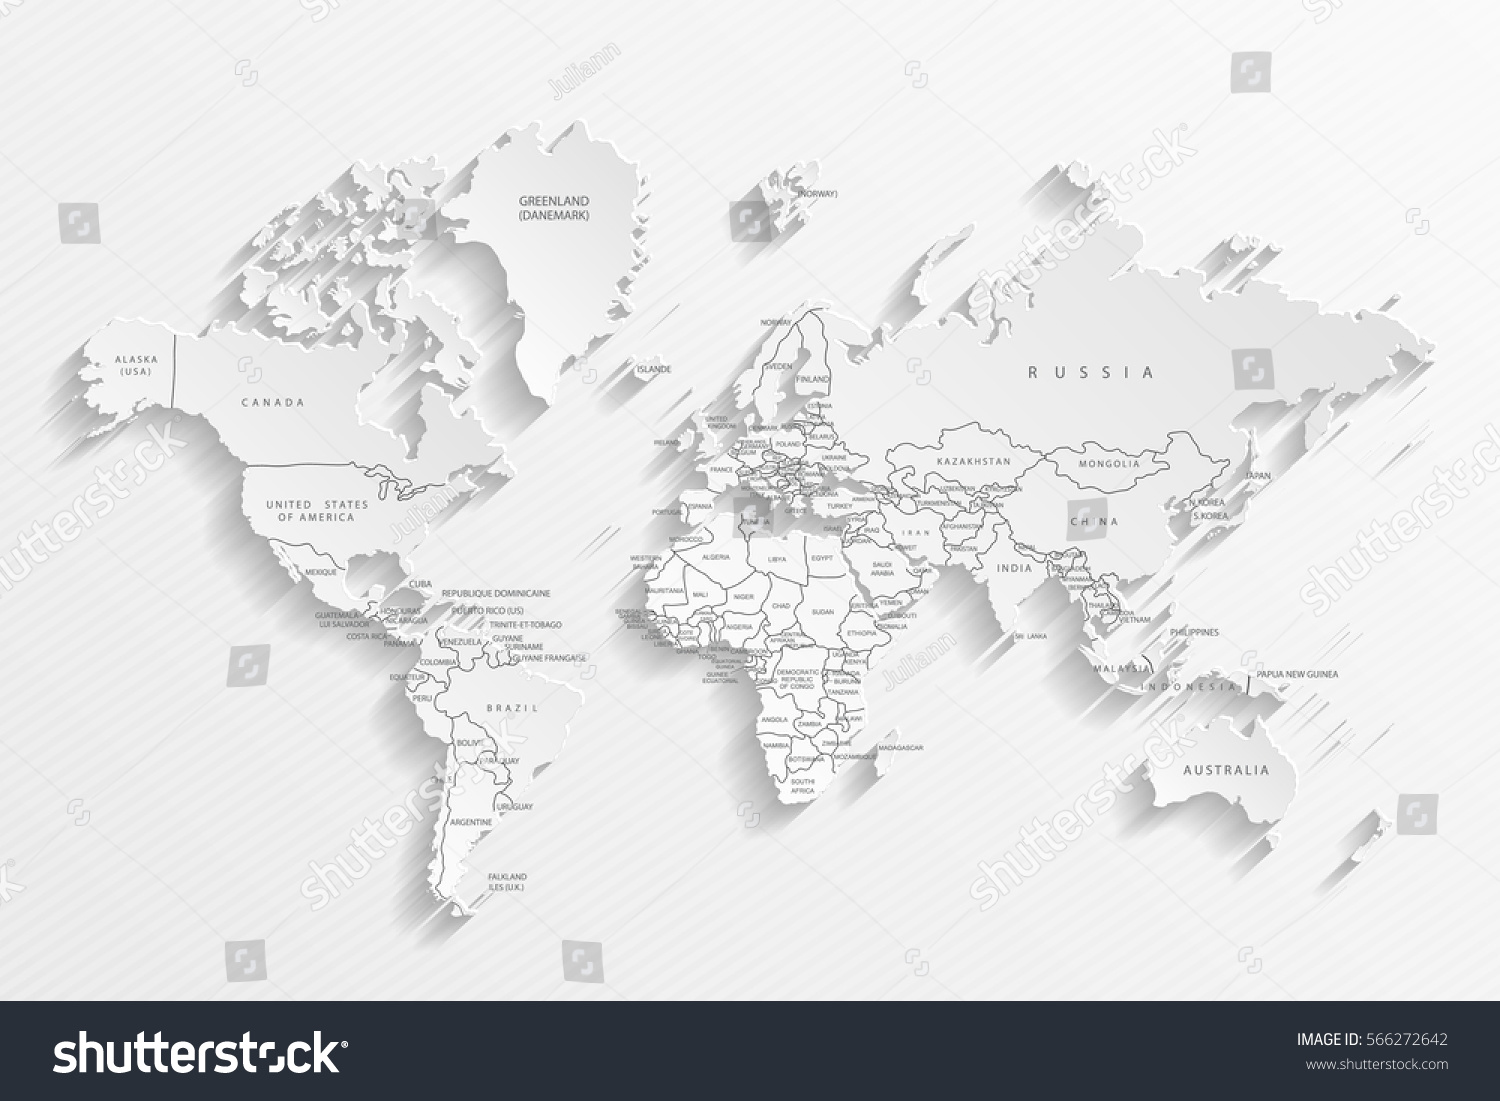 Political map world gray world mapcountries vectores en stock political map of the world gray world map countries vector illustration gumiabroncs Choice Image